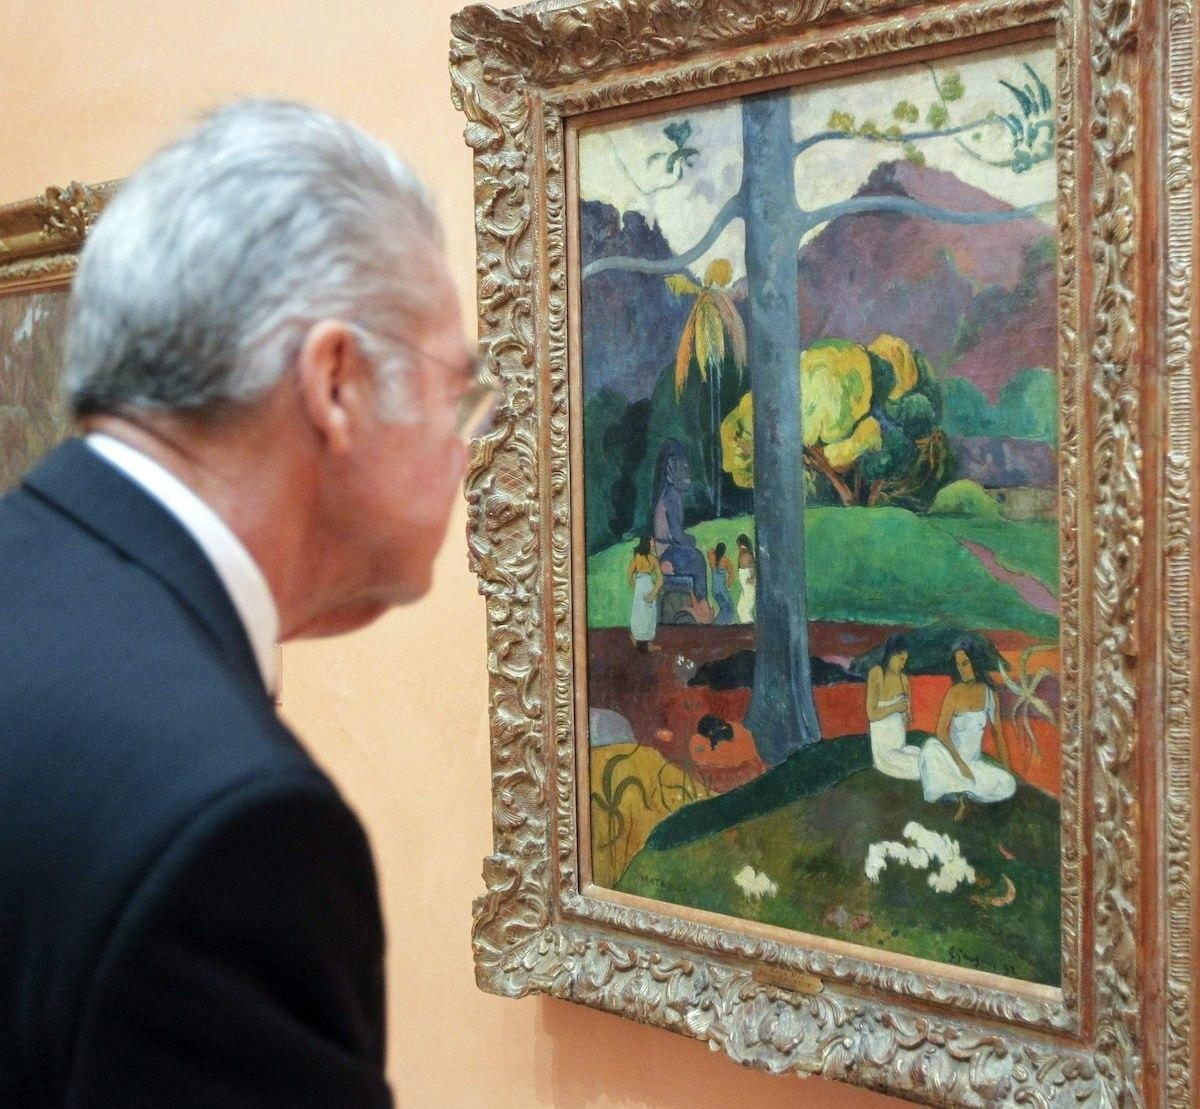 Gauguin's painting will be sold from a museum in Madrid